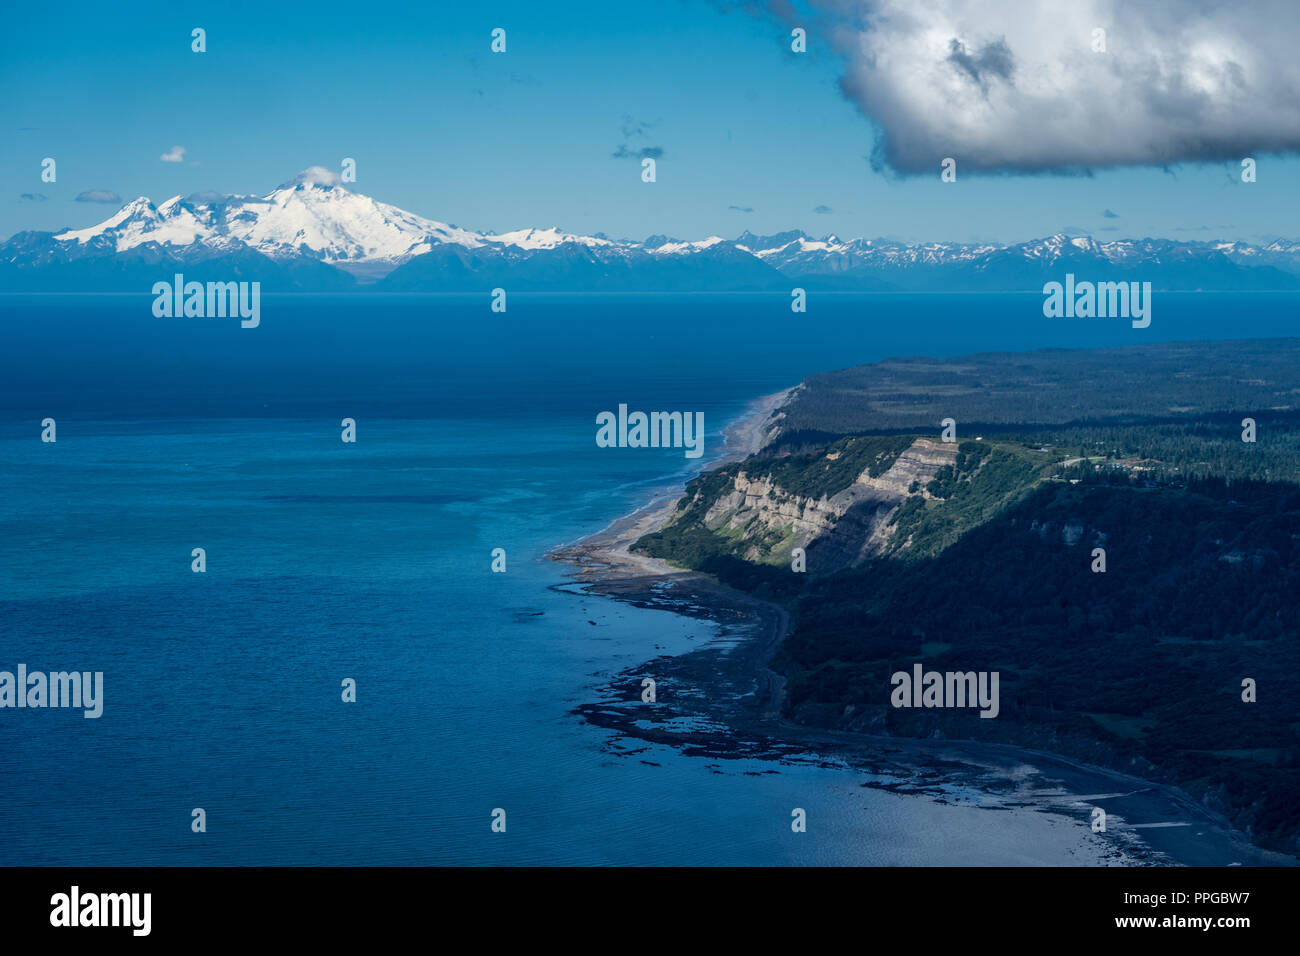 Aerial photography view of Alaska's Cook Inlet with a clear view of Mount Redoubt in Homer Alaska - Stock Image